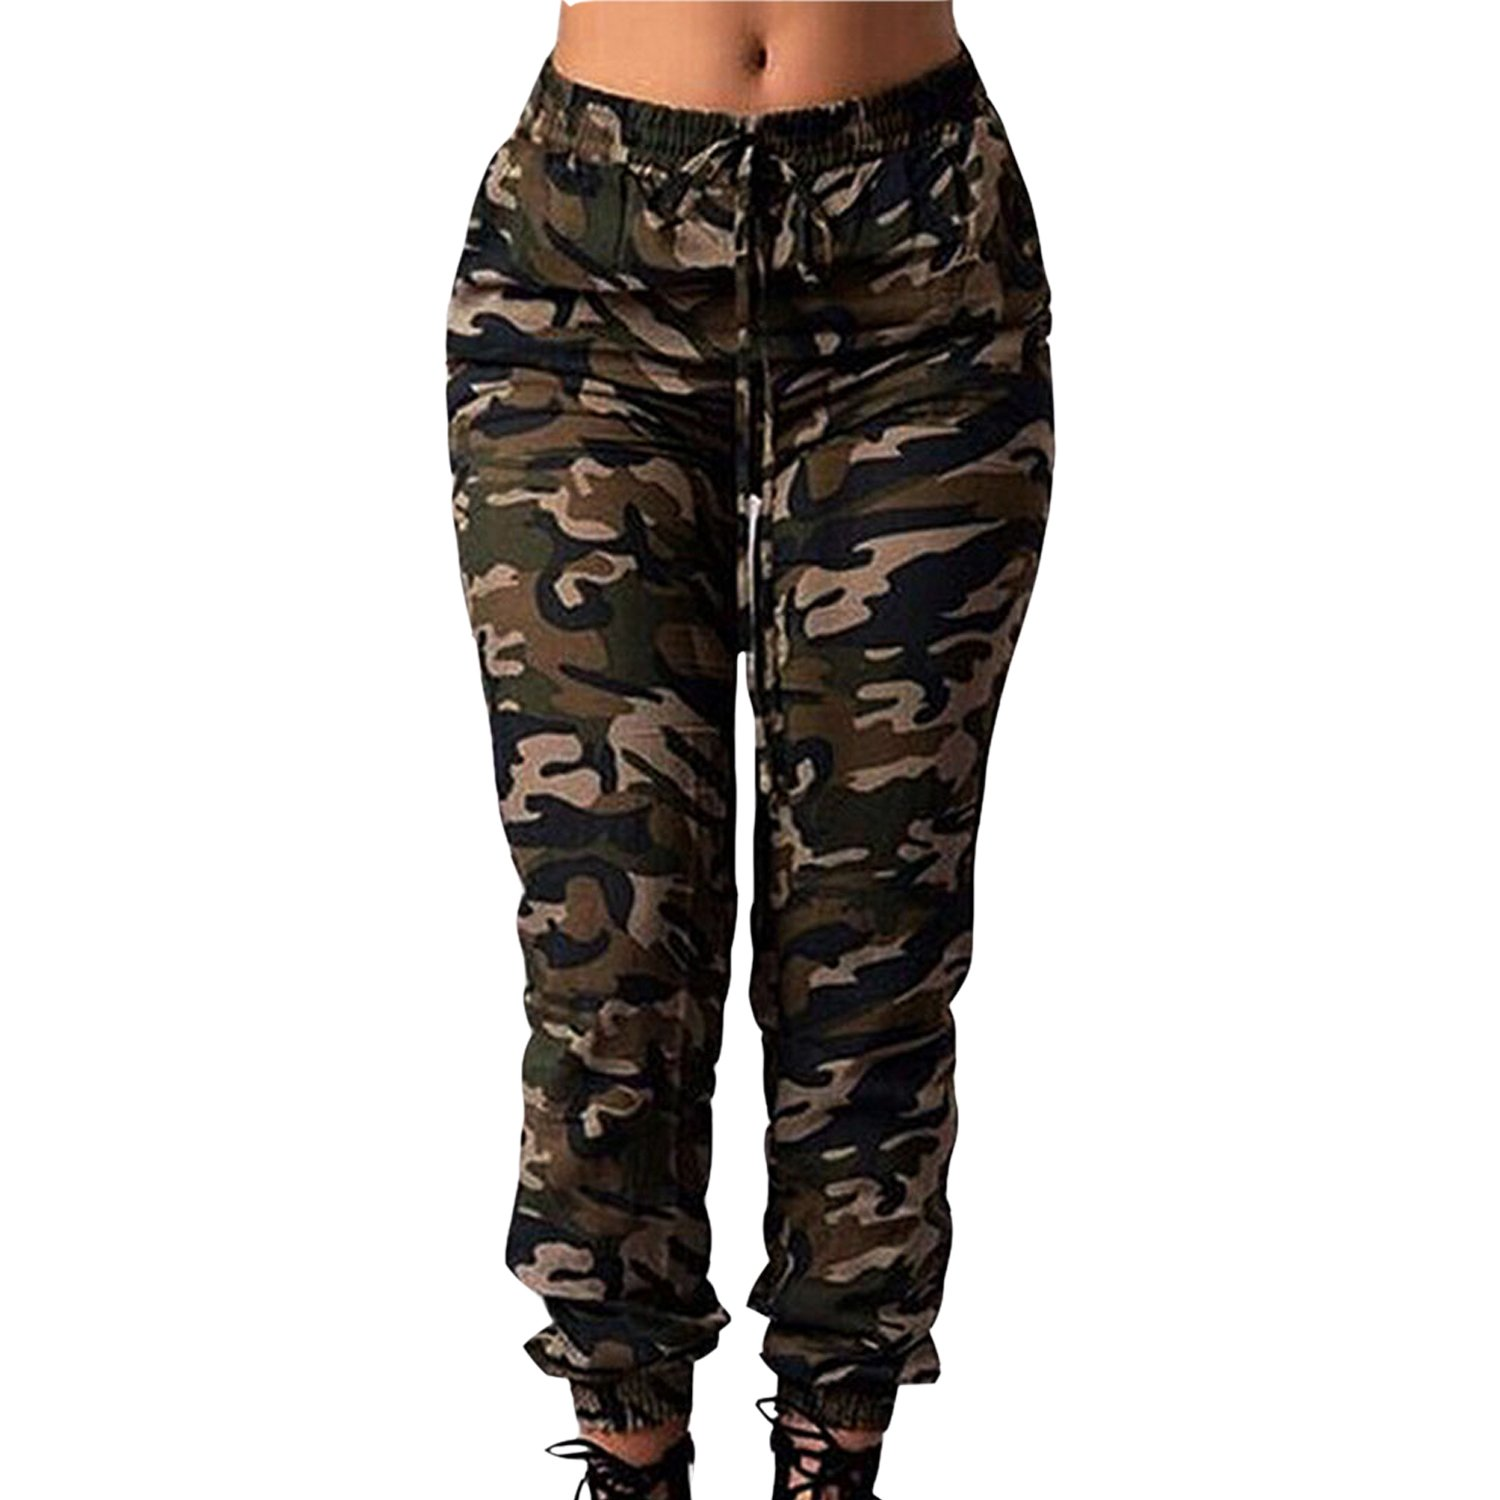 LAEMILIA Women Casual Long Pants Spring Camouflage Loose Trousers Drawstring Outdoor